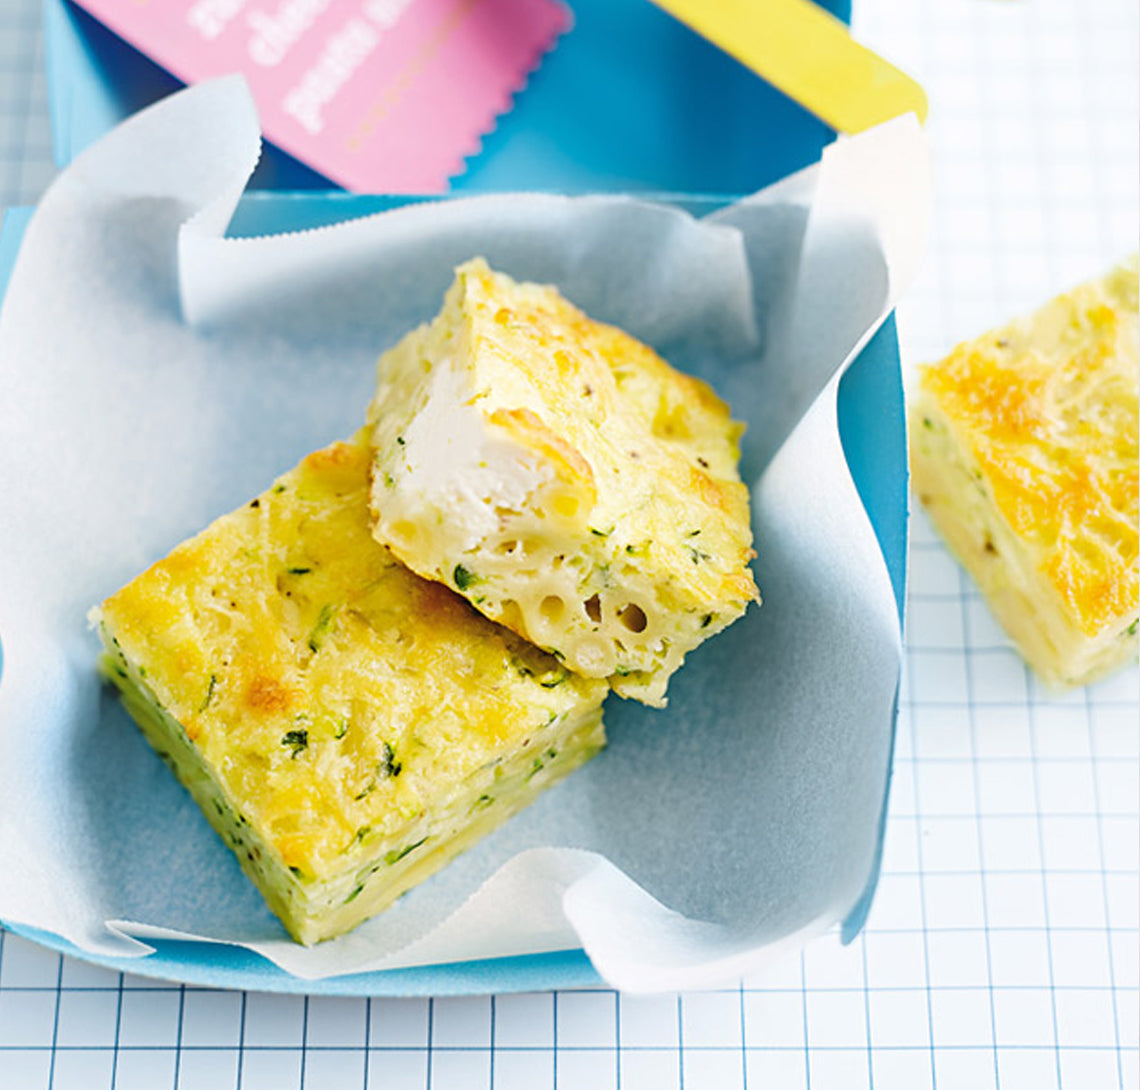 Kids Lunch Box - Zucchini, cheese and pasta slice